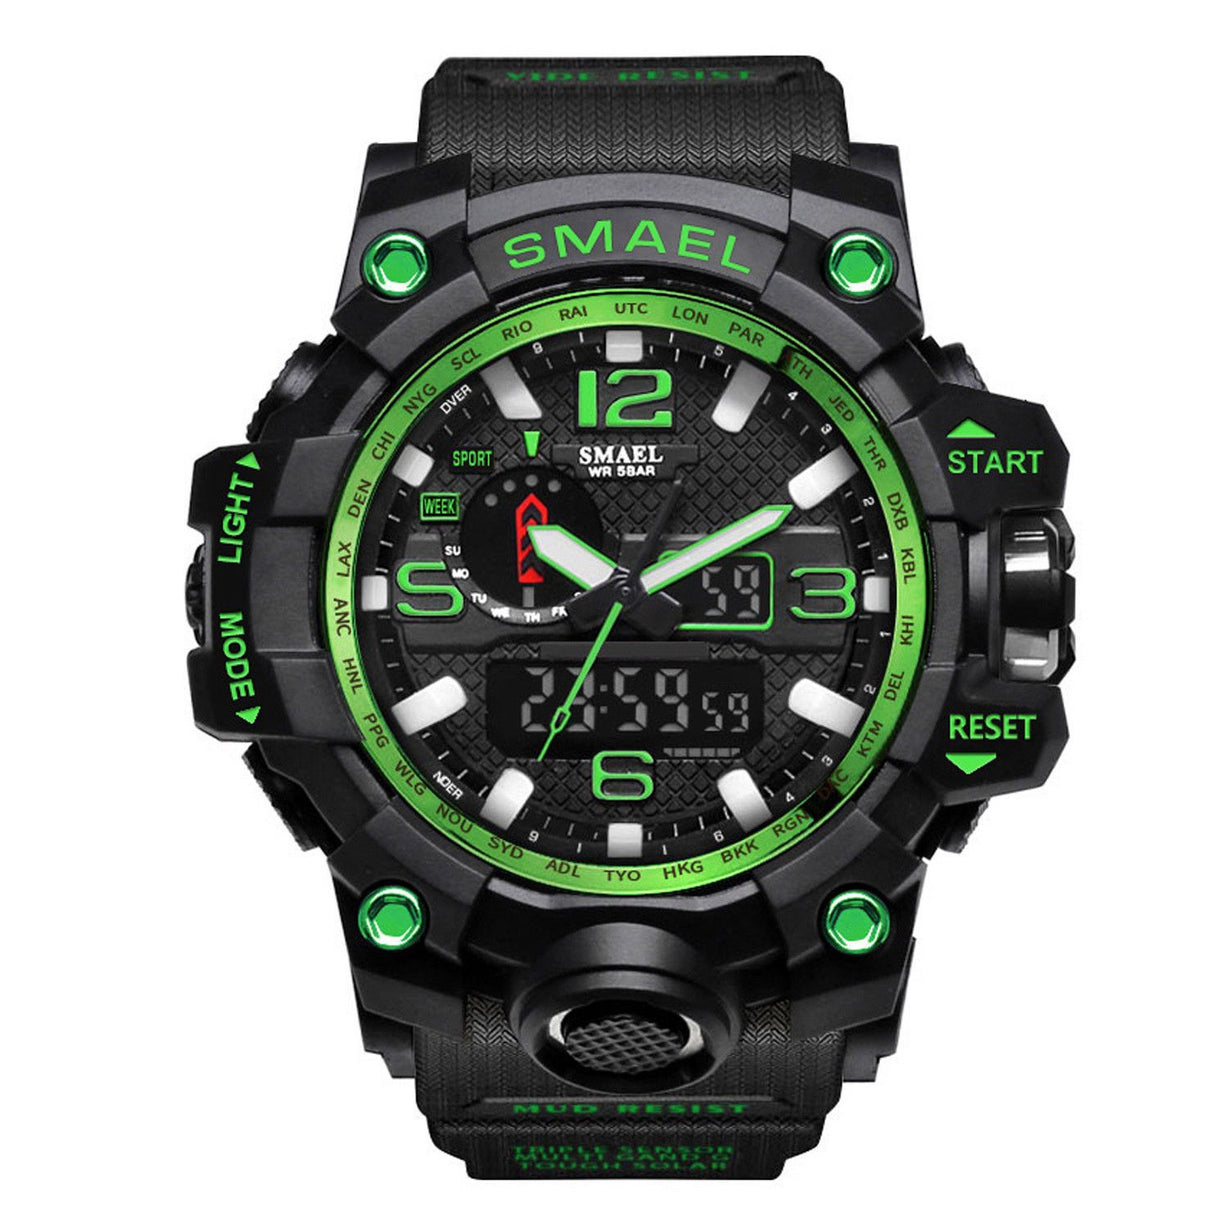 SMX Patriot Model Military Quartz Sports Watch